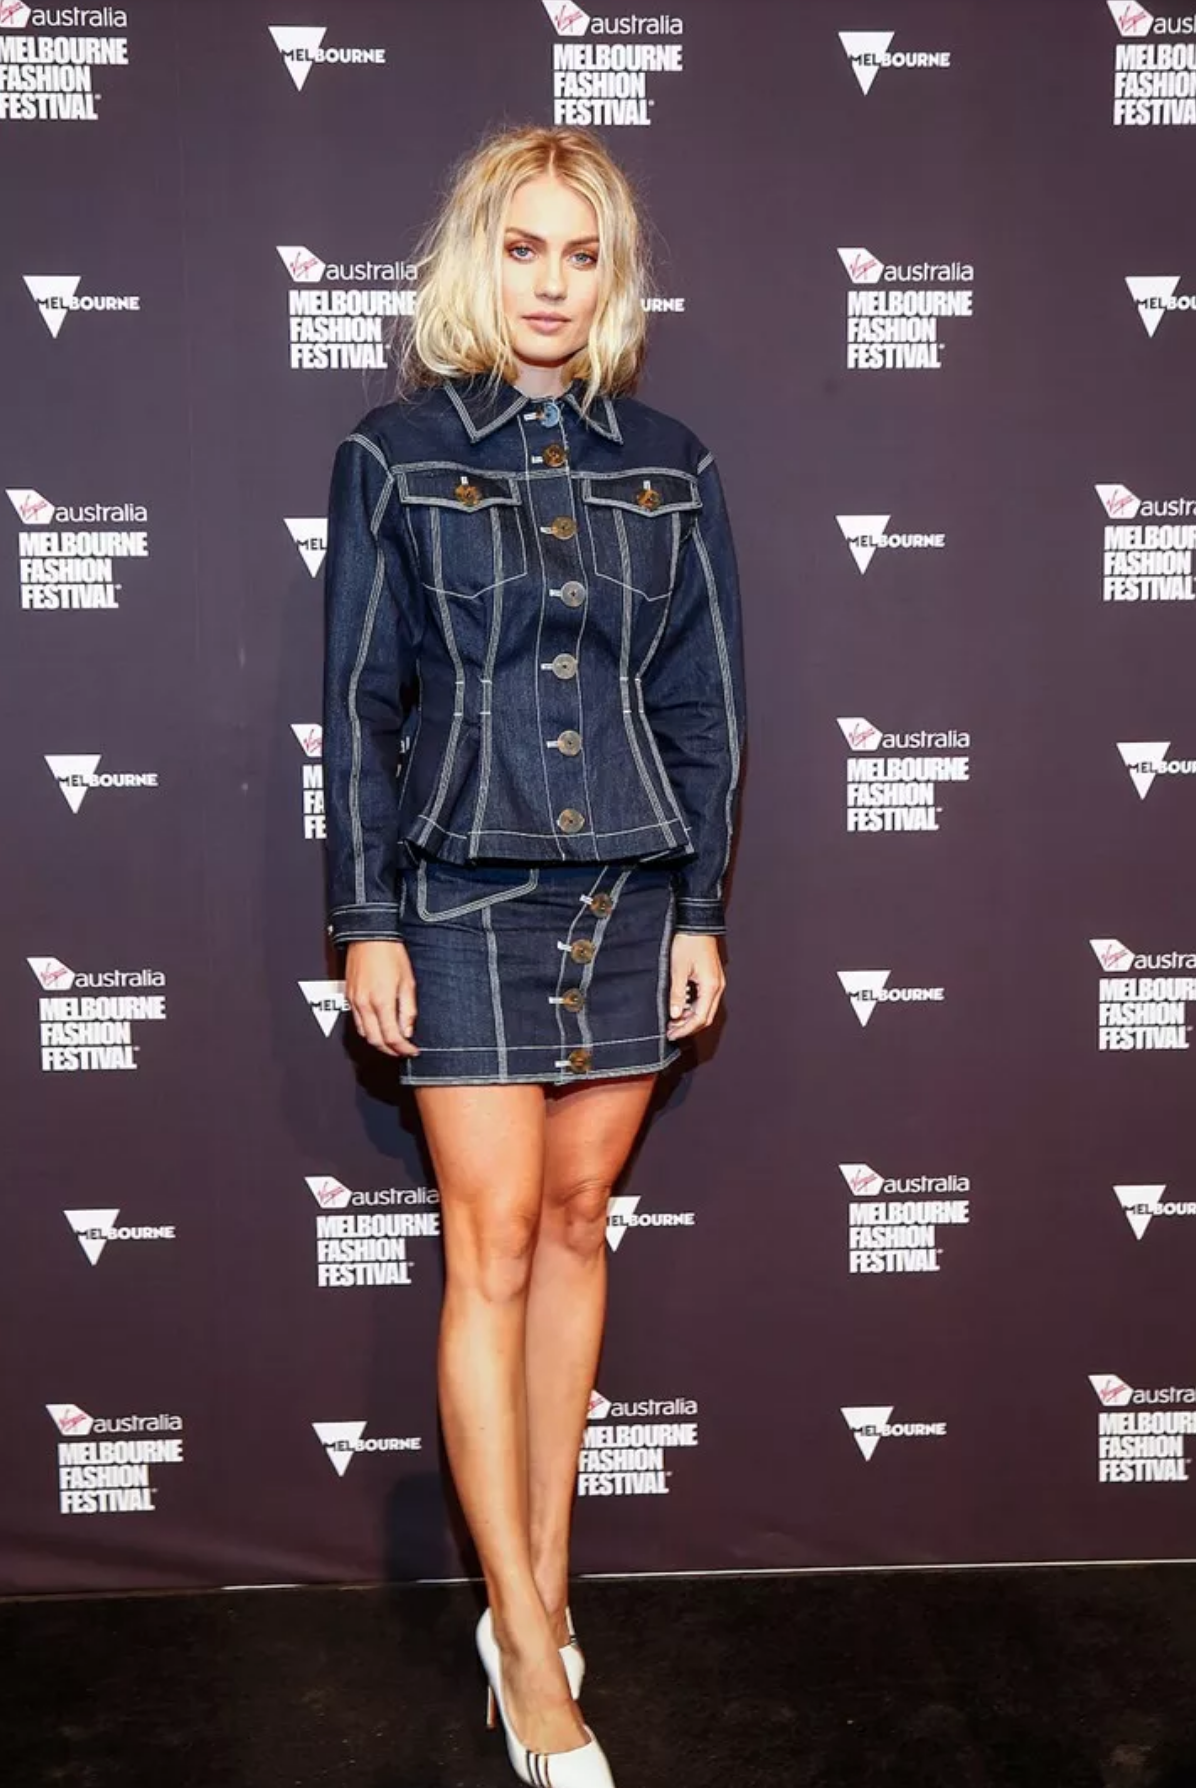 ELYSE KNOWLES WHO MAGAZINE 2019.png